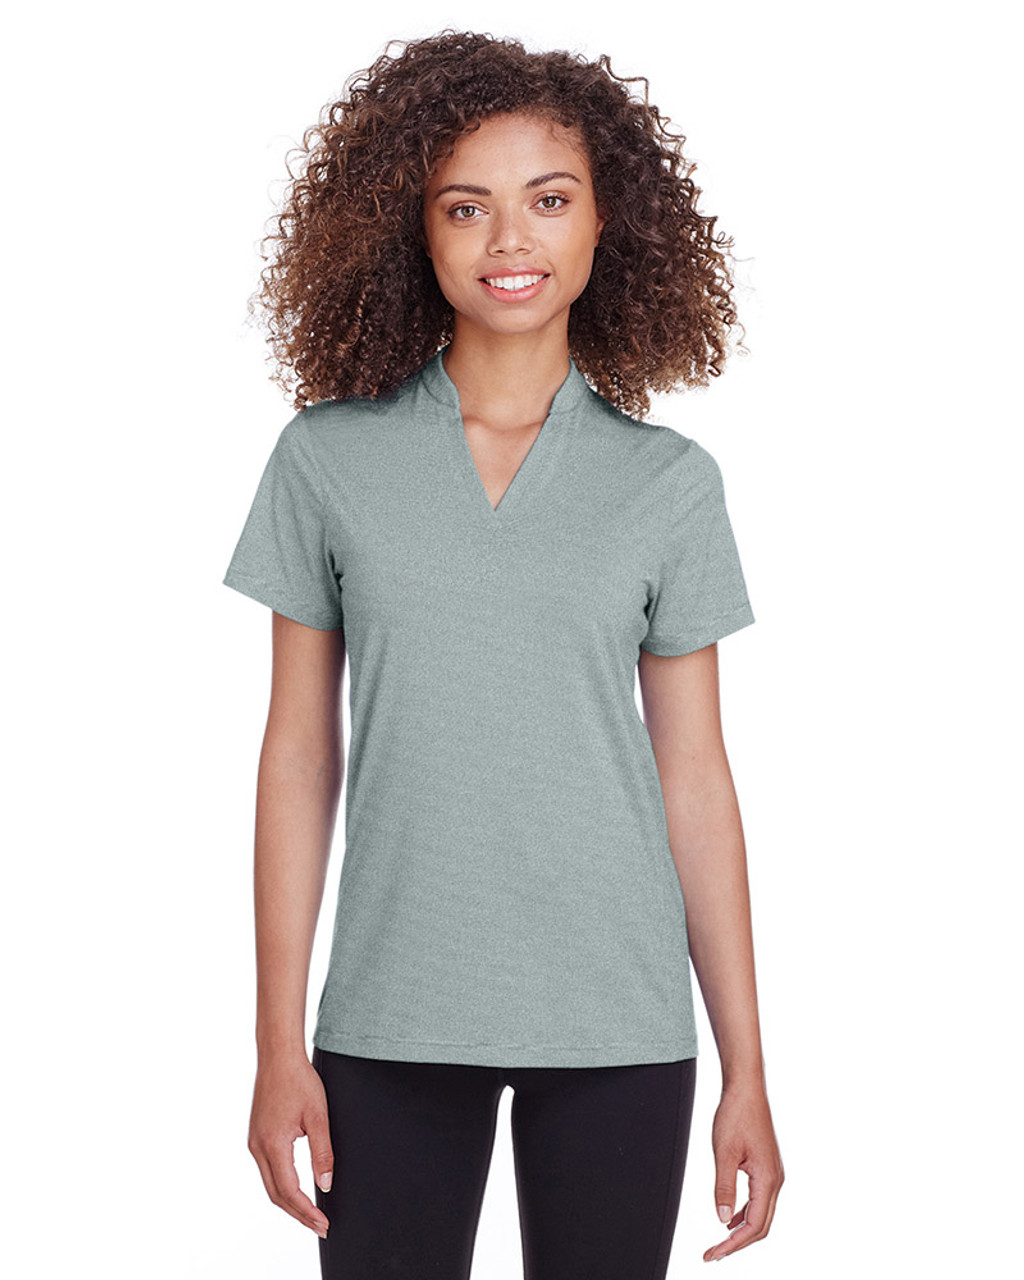 Frontier Stripe - S16563 Spyder Ladies' Boundary Polo | Blankclothing.ca